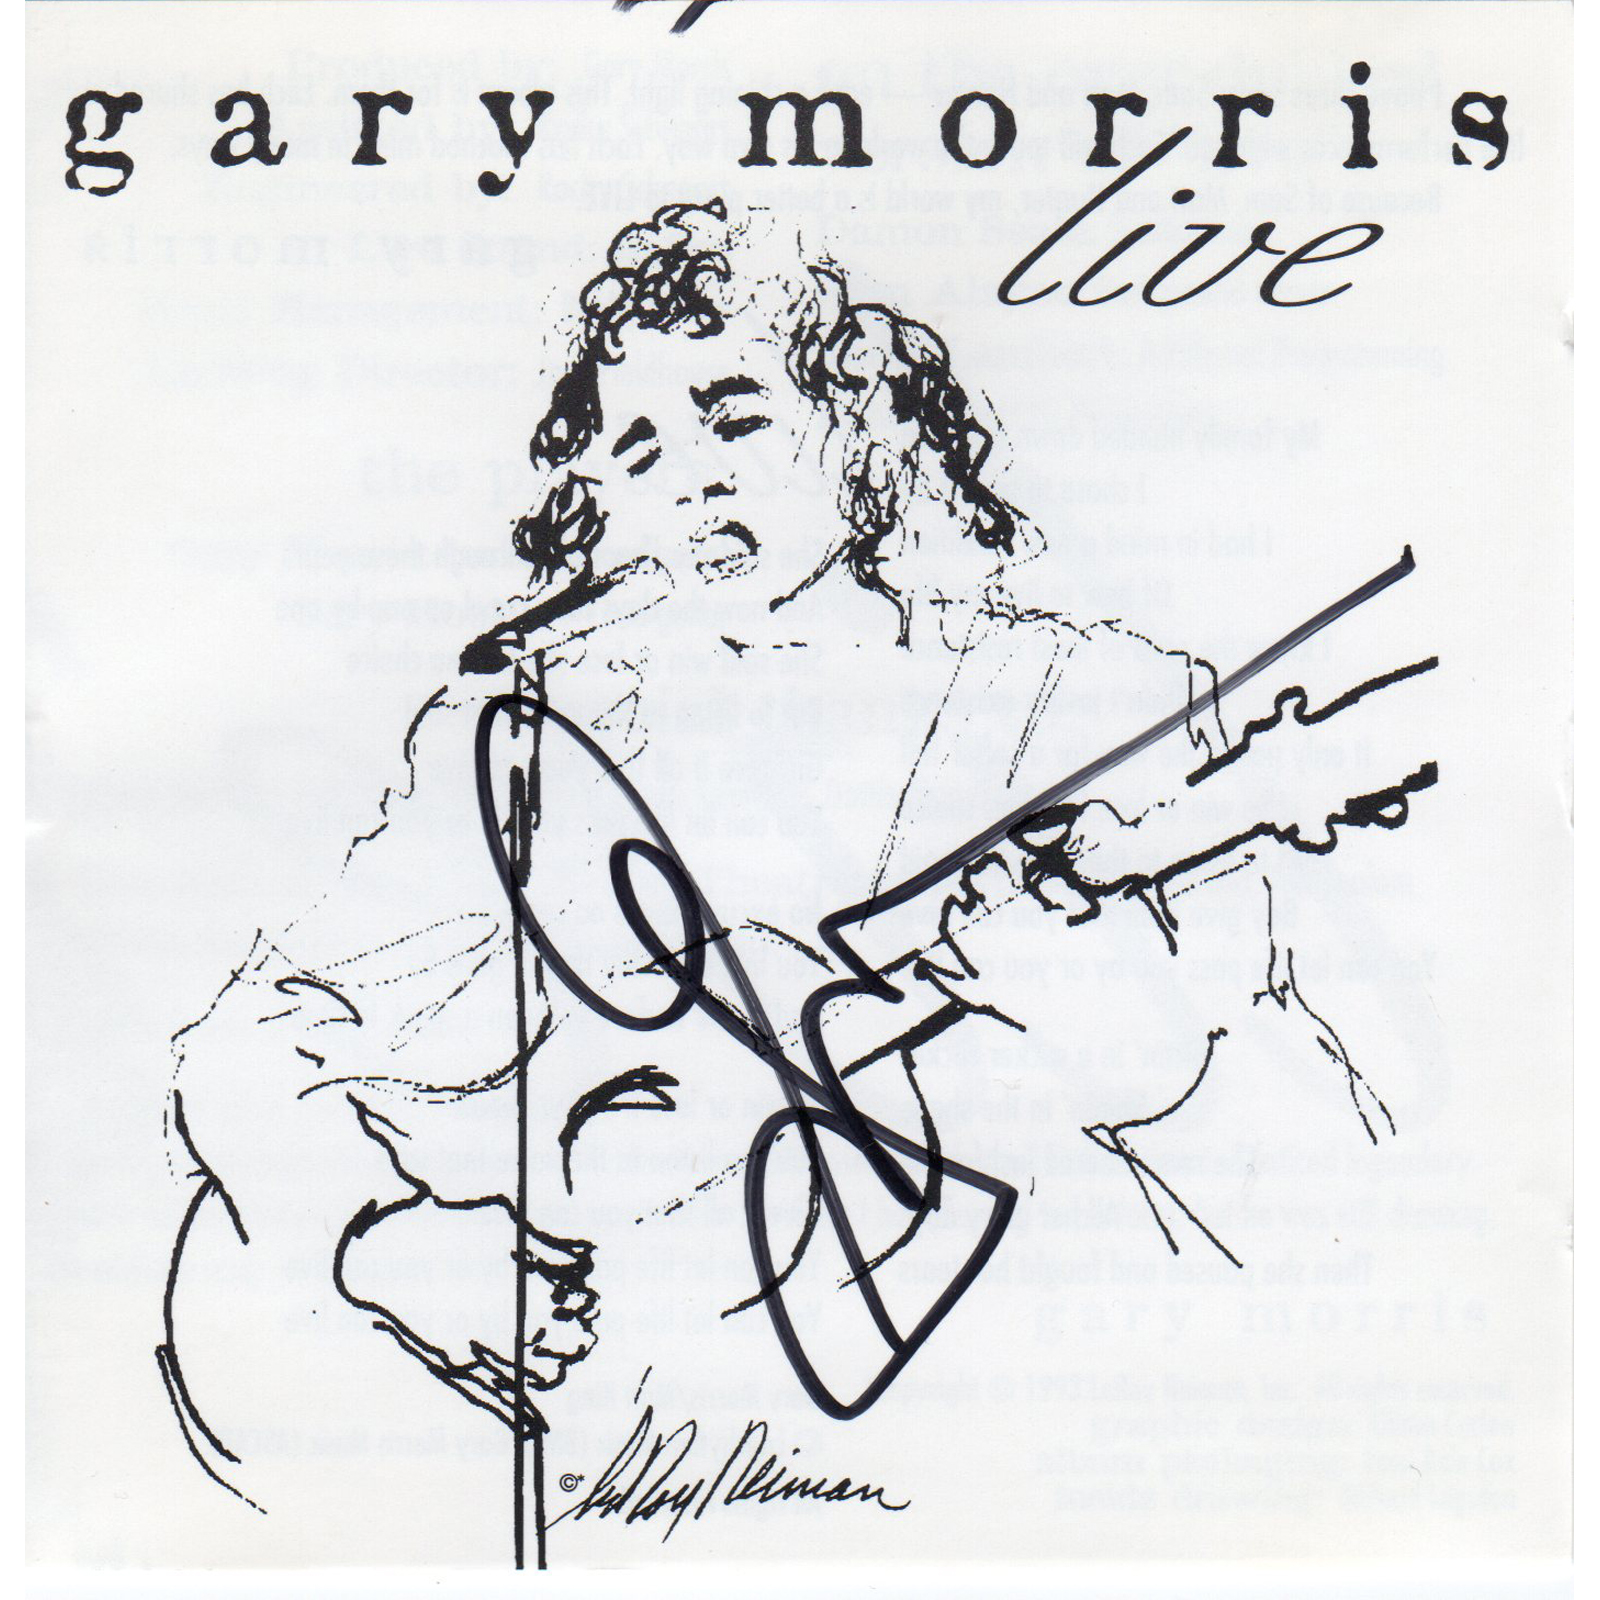 Gary Morris Live CD Autographed Country Music Memorabilia